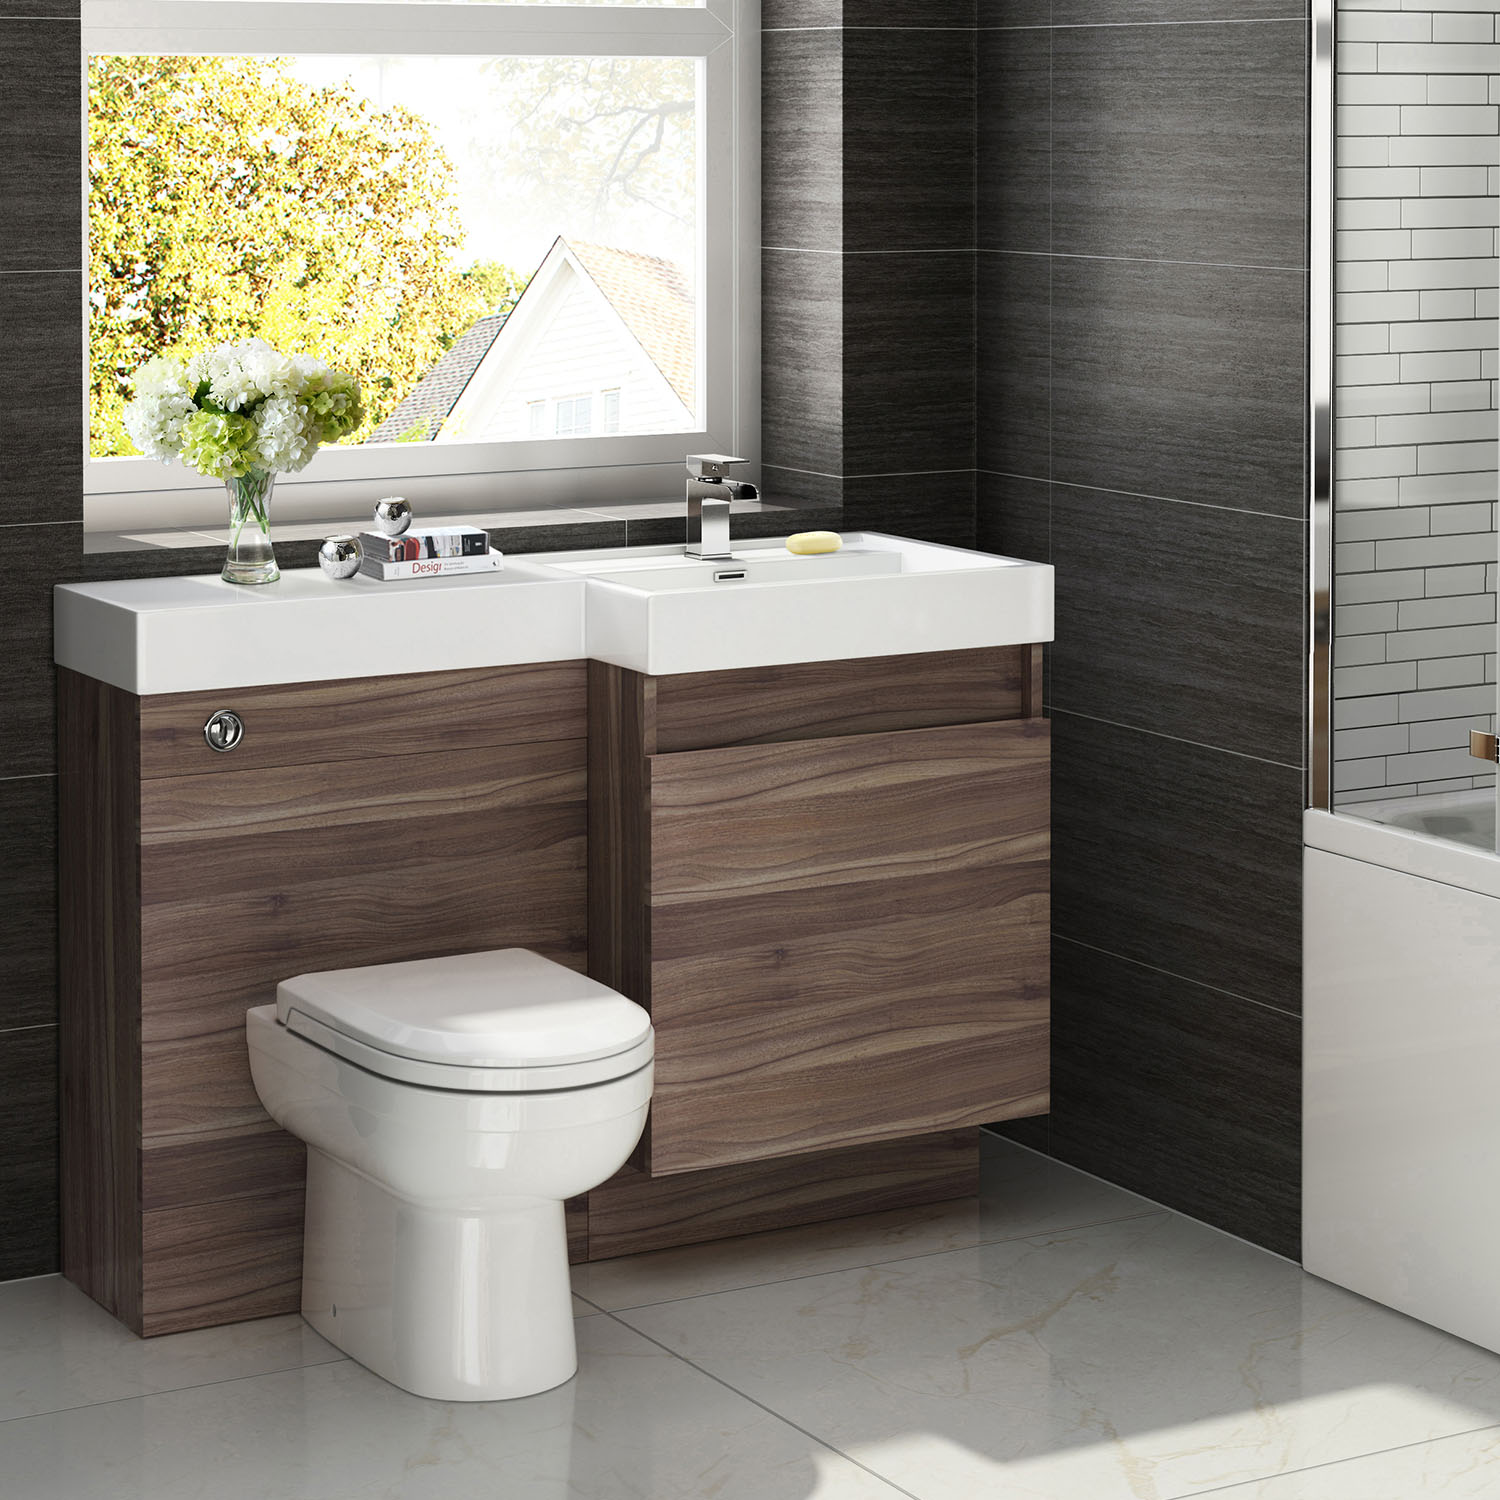 Nice mirabelle sinks with Beveled Mirror Vanity And Single Sink for bathroom with mirabelle undermount sink